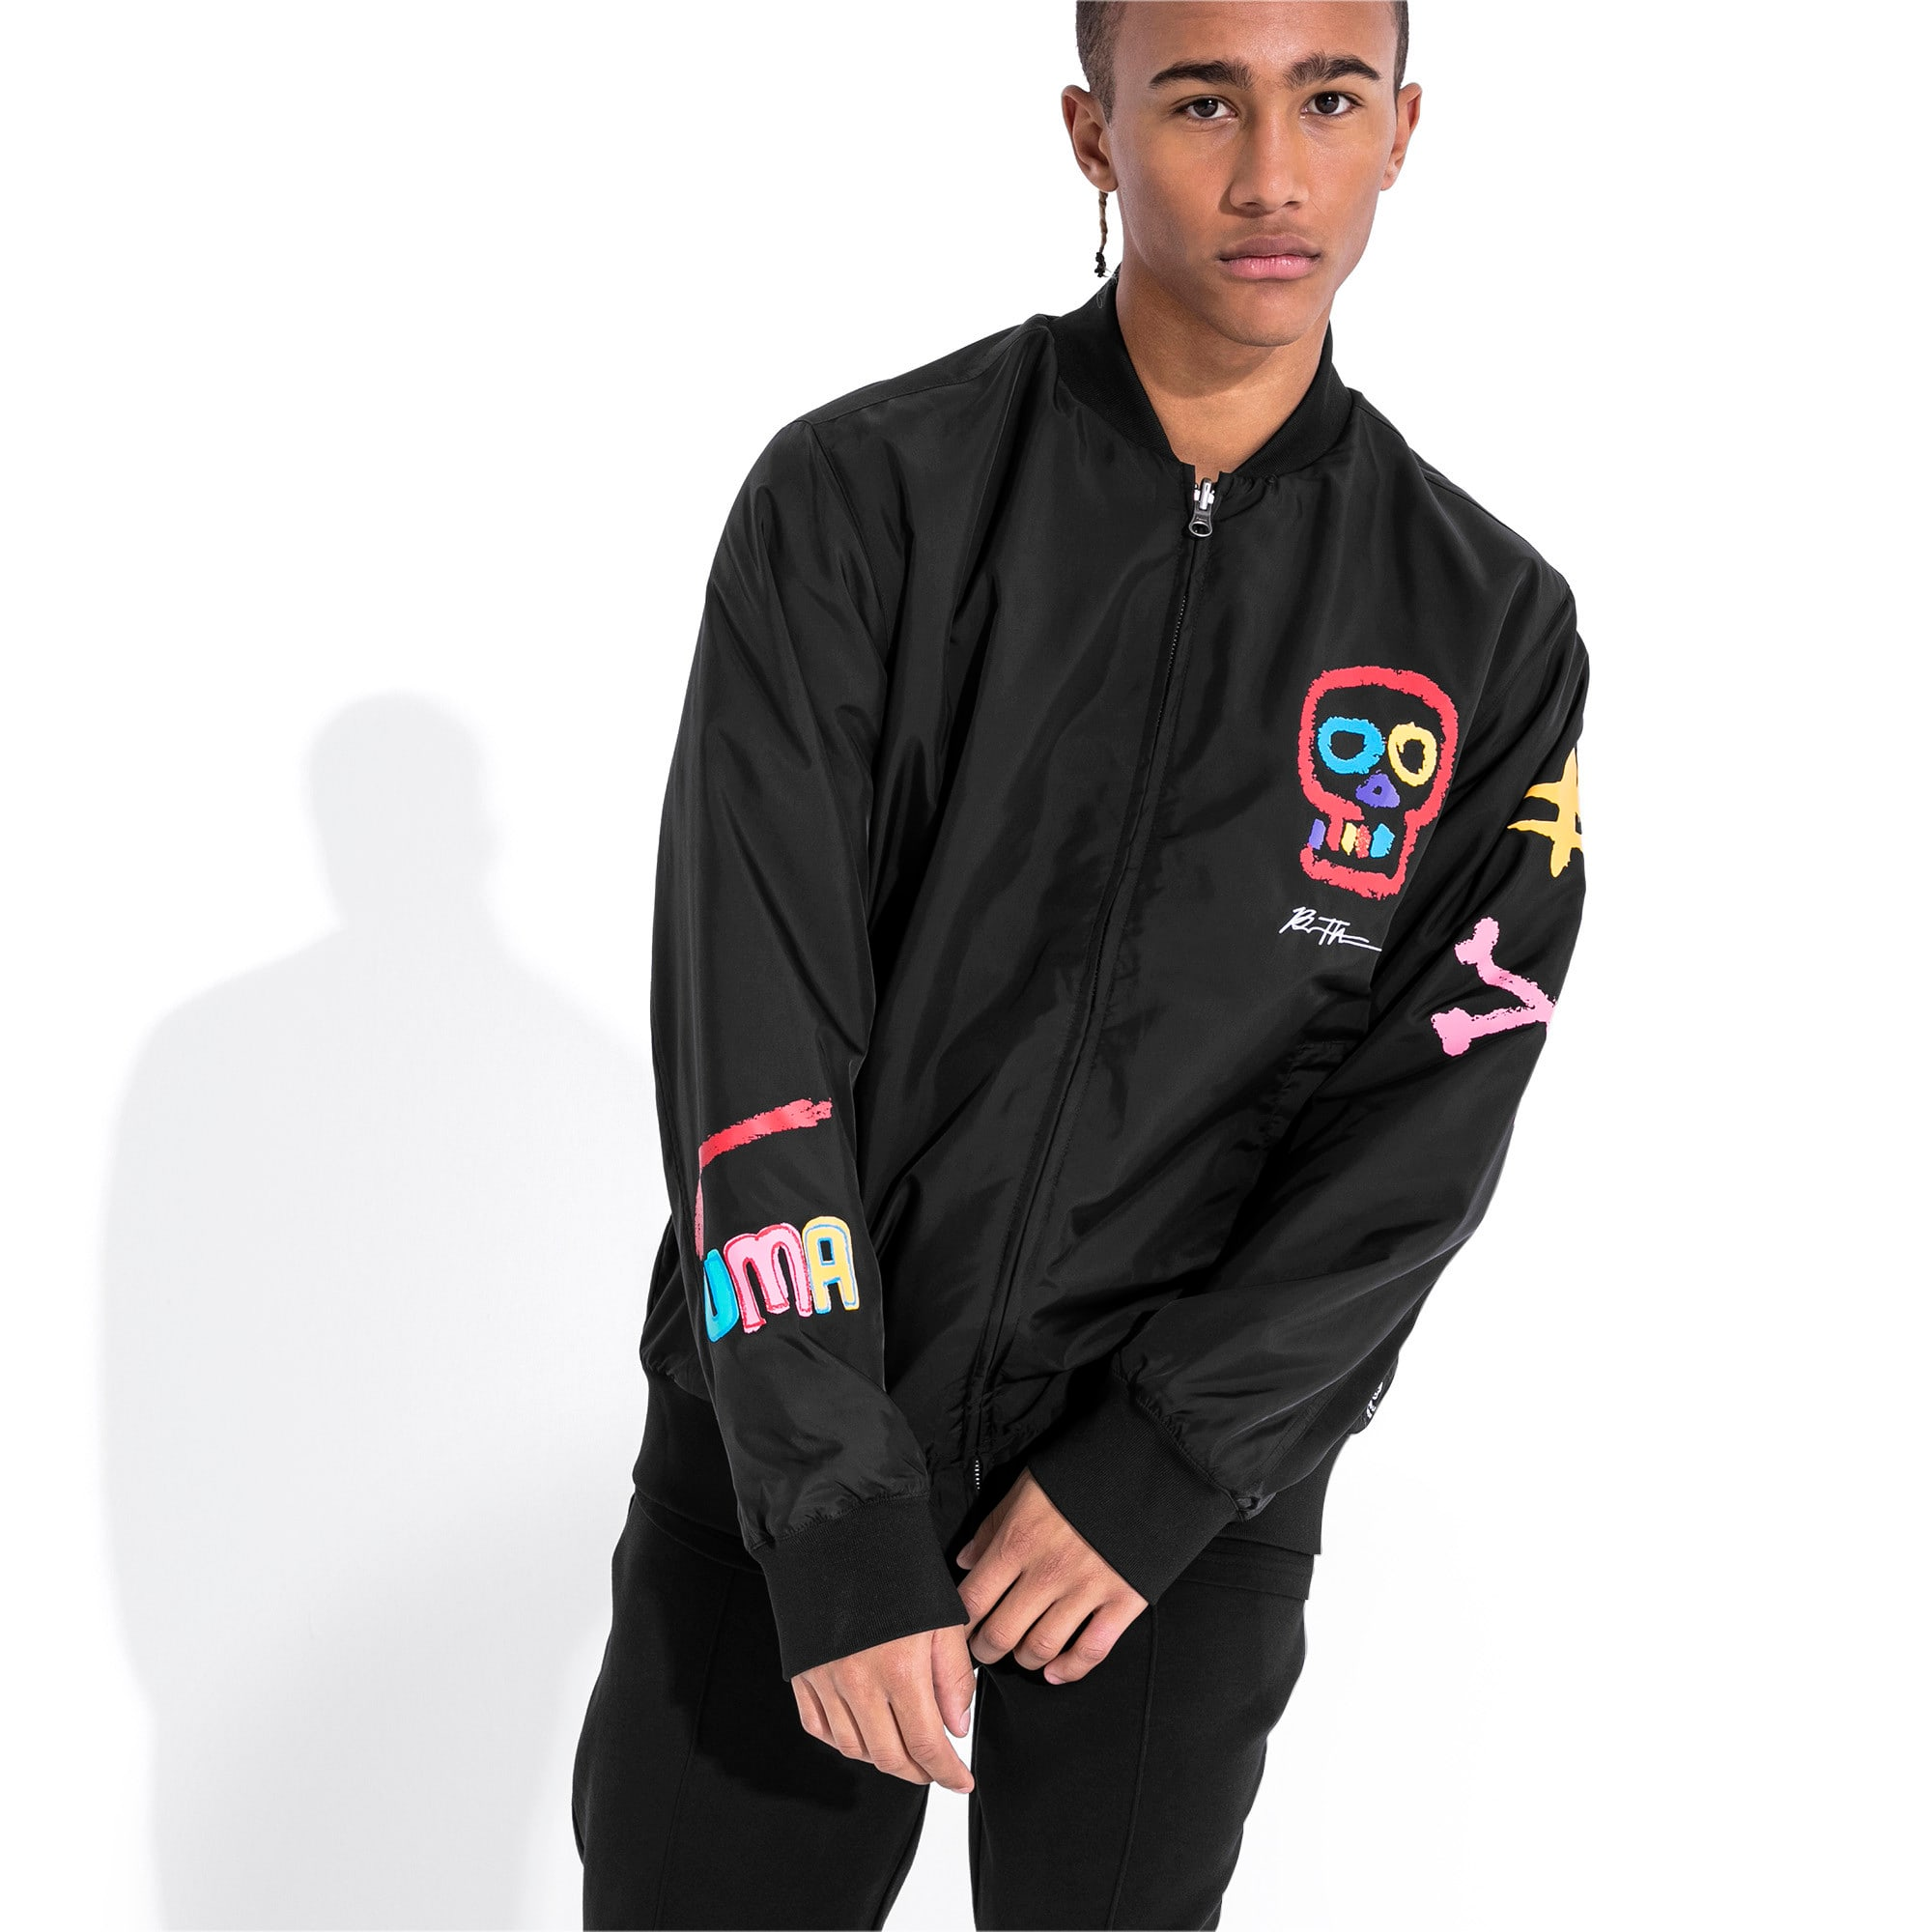 Thumbnail 1 of PUMA x BRADLEY THEODORE REV. BOMBER, Puma Black, medium-JPN